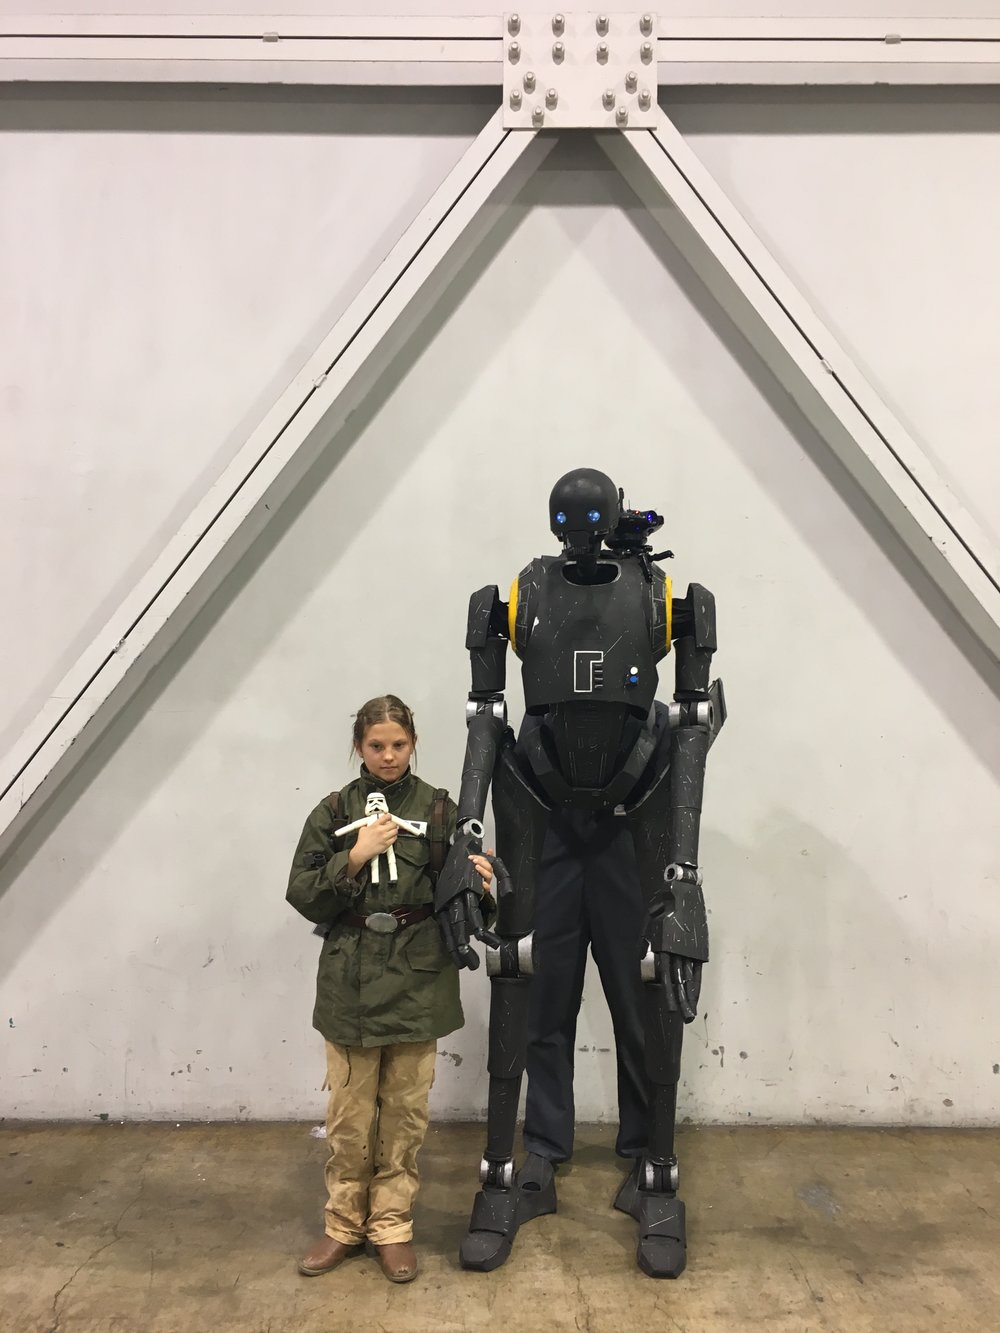 My neighbor K-2SO